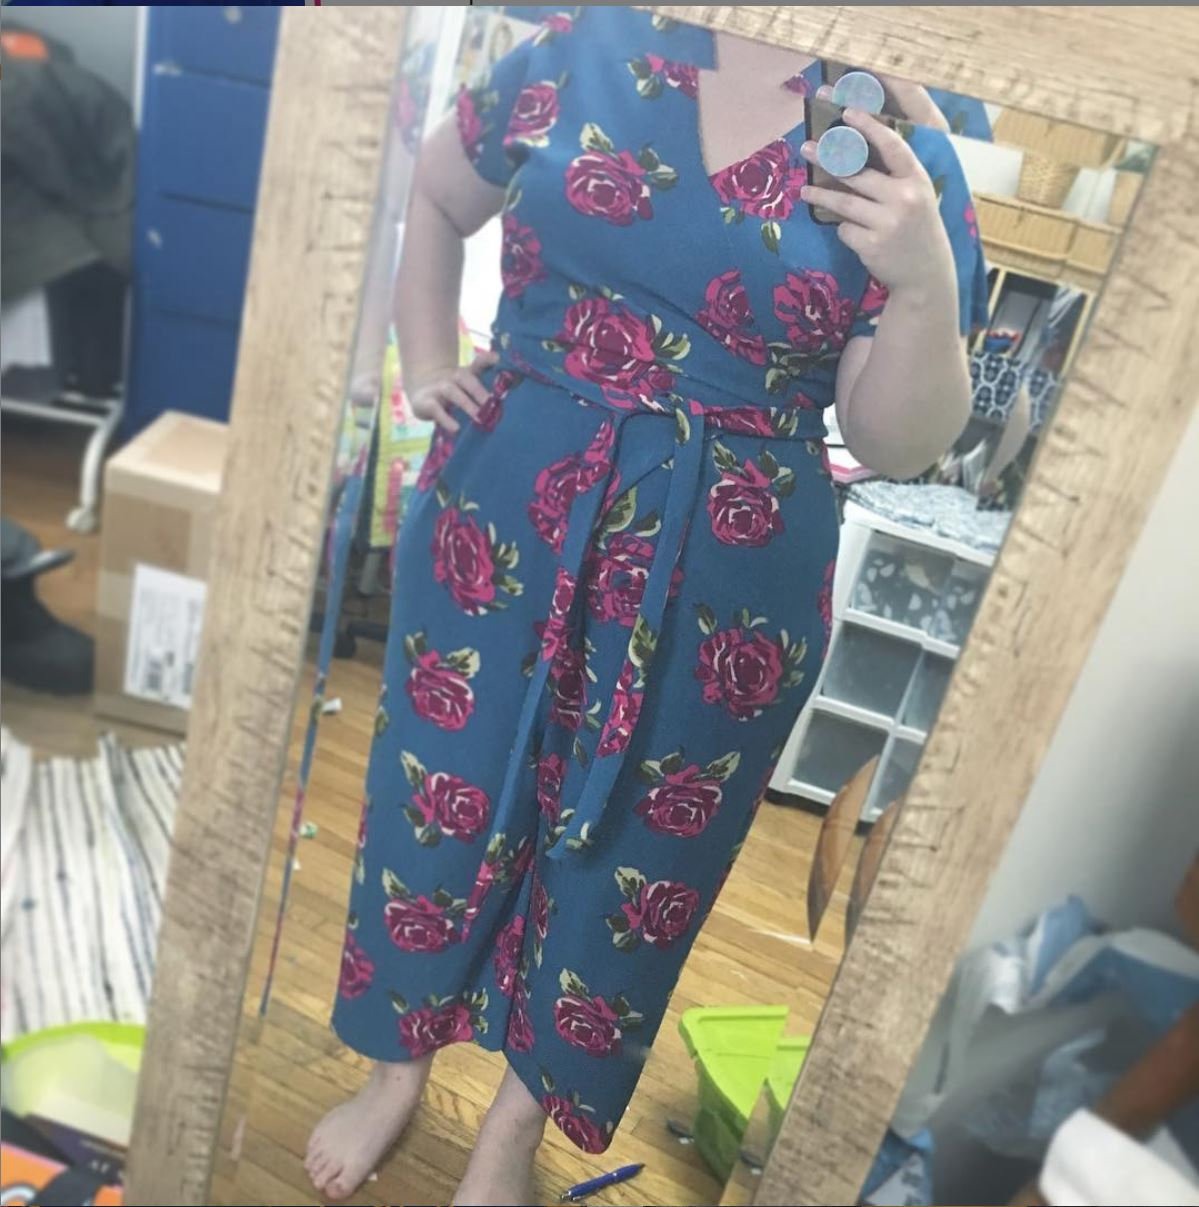 Blue jumpsuit with red flowers on it